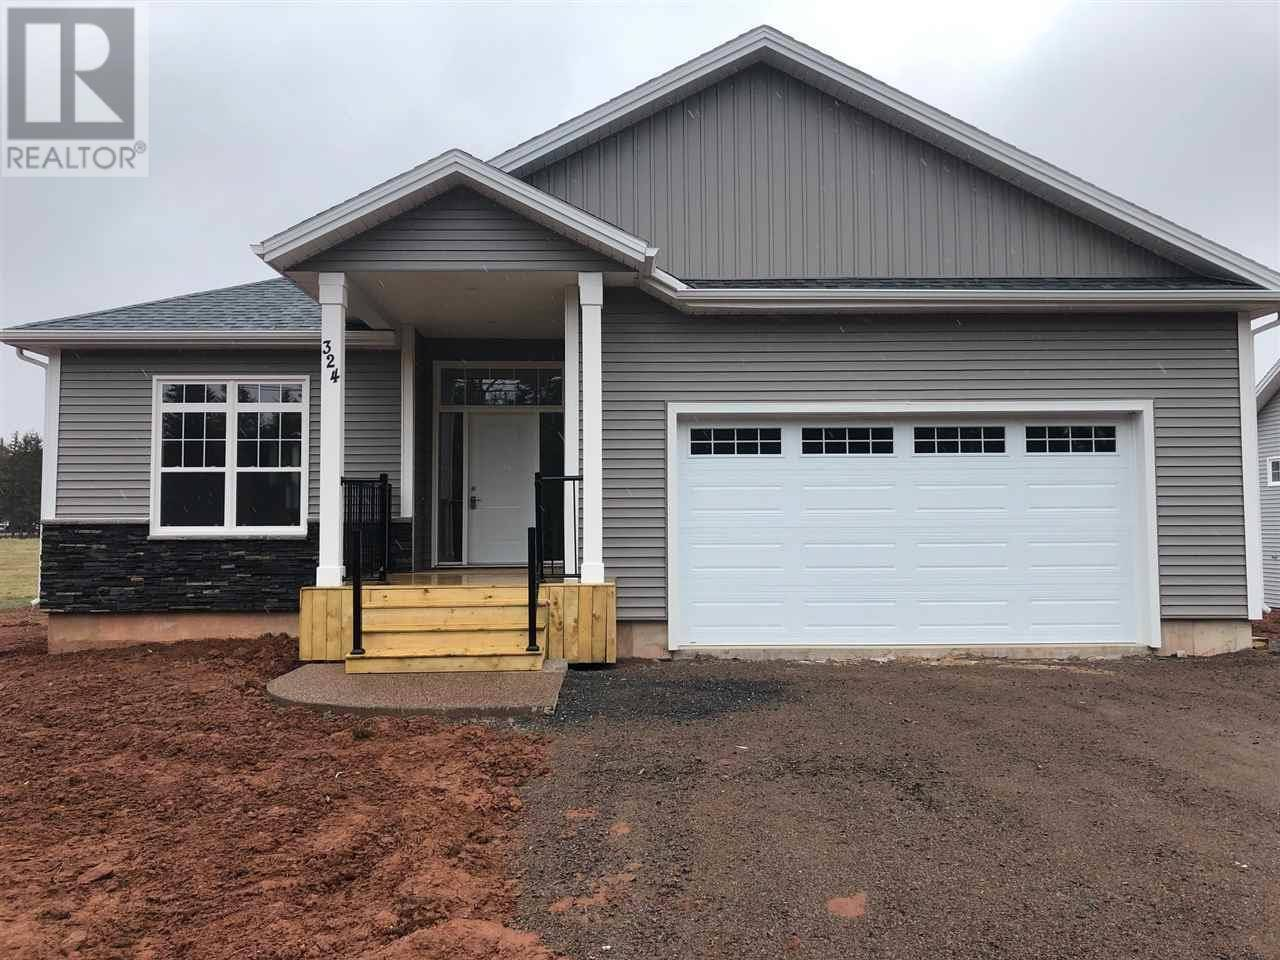 House for sale at 324 Upton Rd West Royalty Prince Edward Island - MLS: 202007038